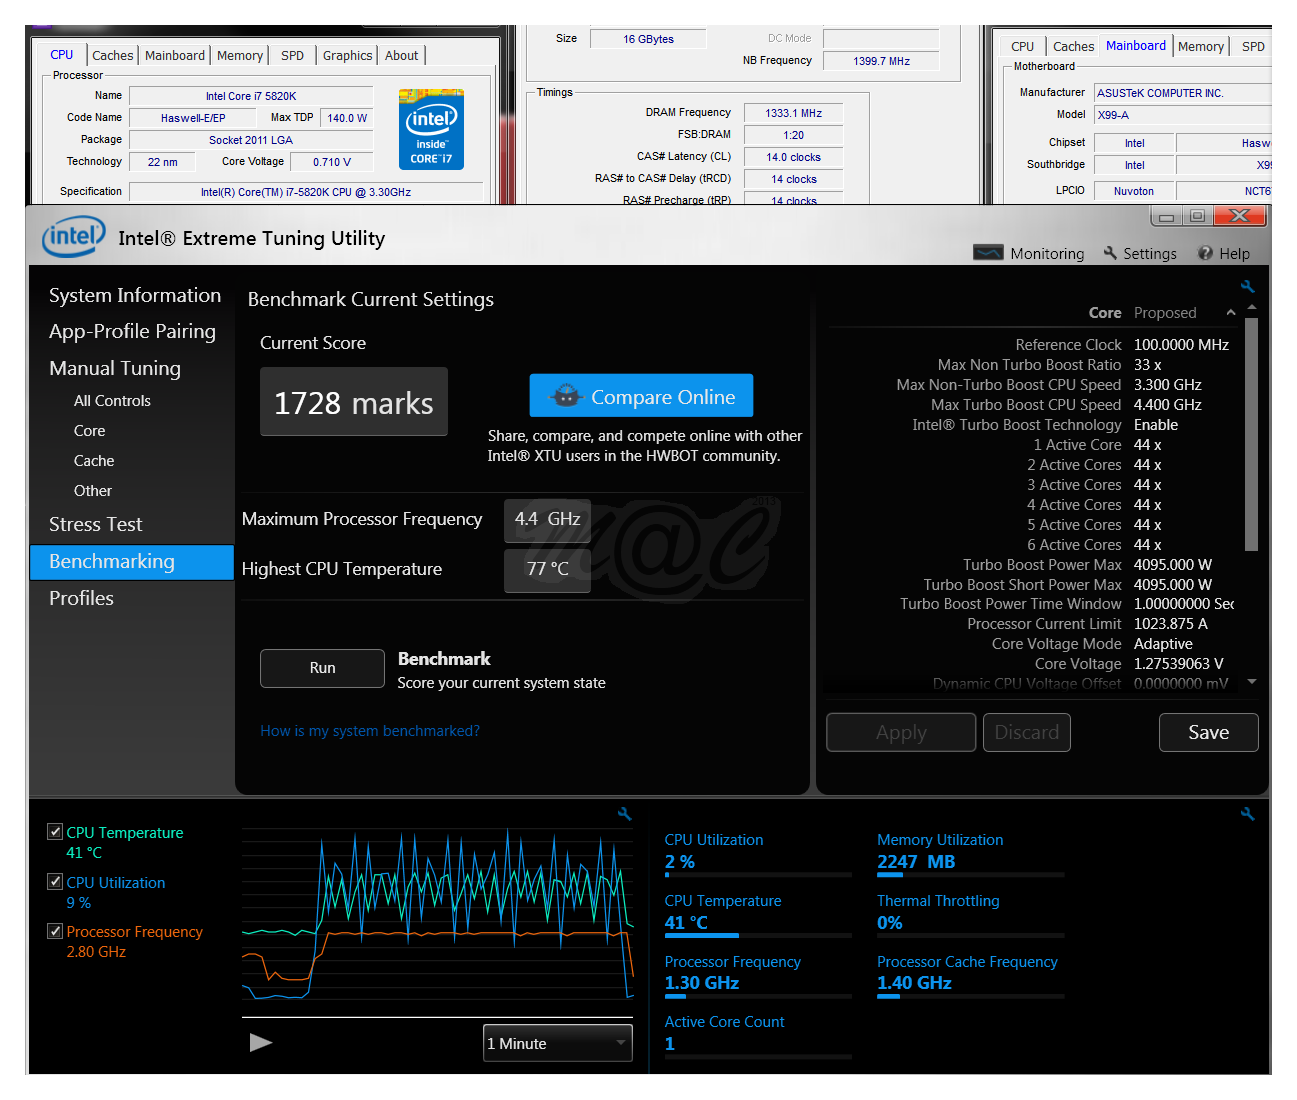 MacClipper - 24/7 Real World Overclocking!